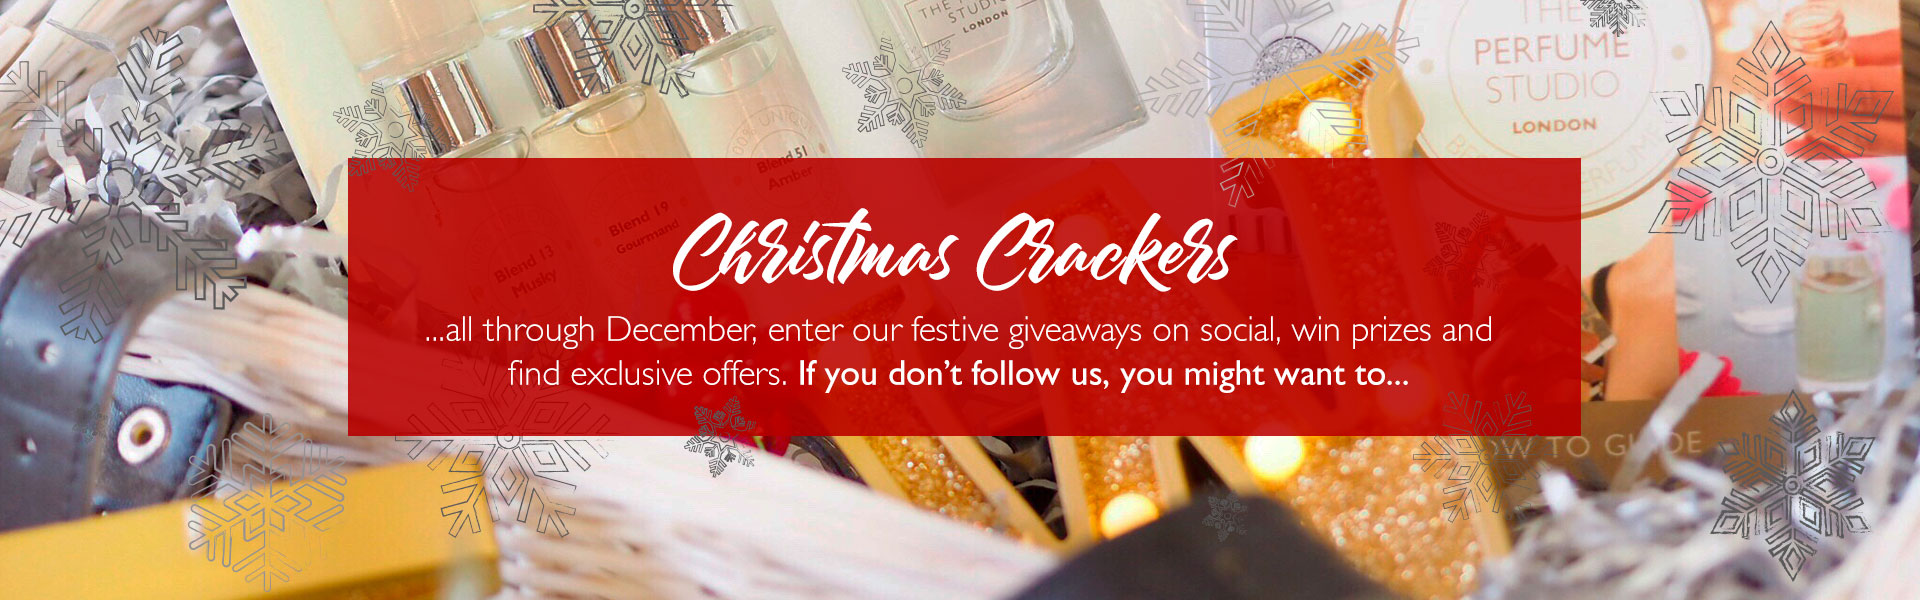 Christmas Crackers...all through December, enter our festive giveaways on social, win prizes and find exclusive offers. If you don't follow us, you might want to...